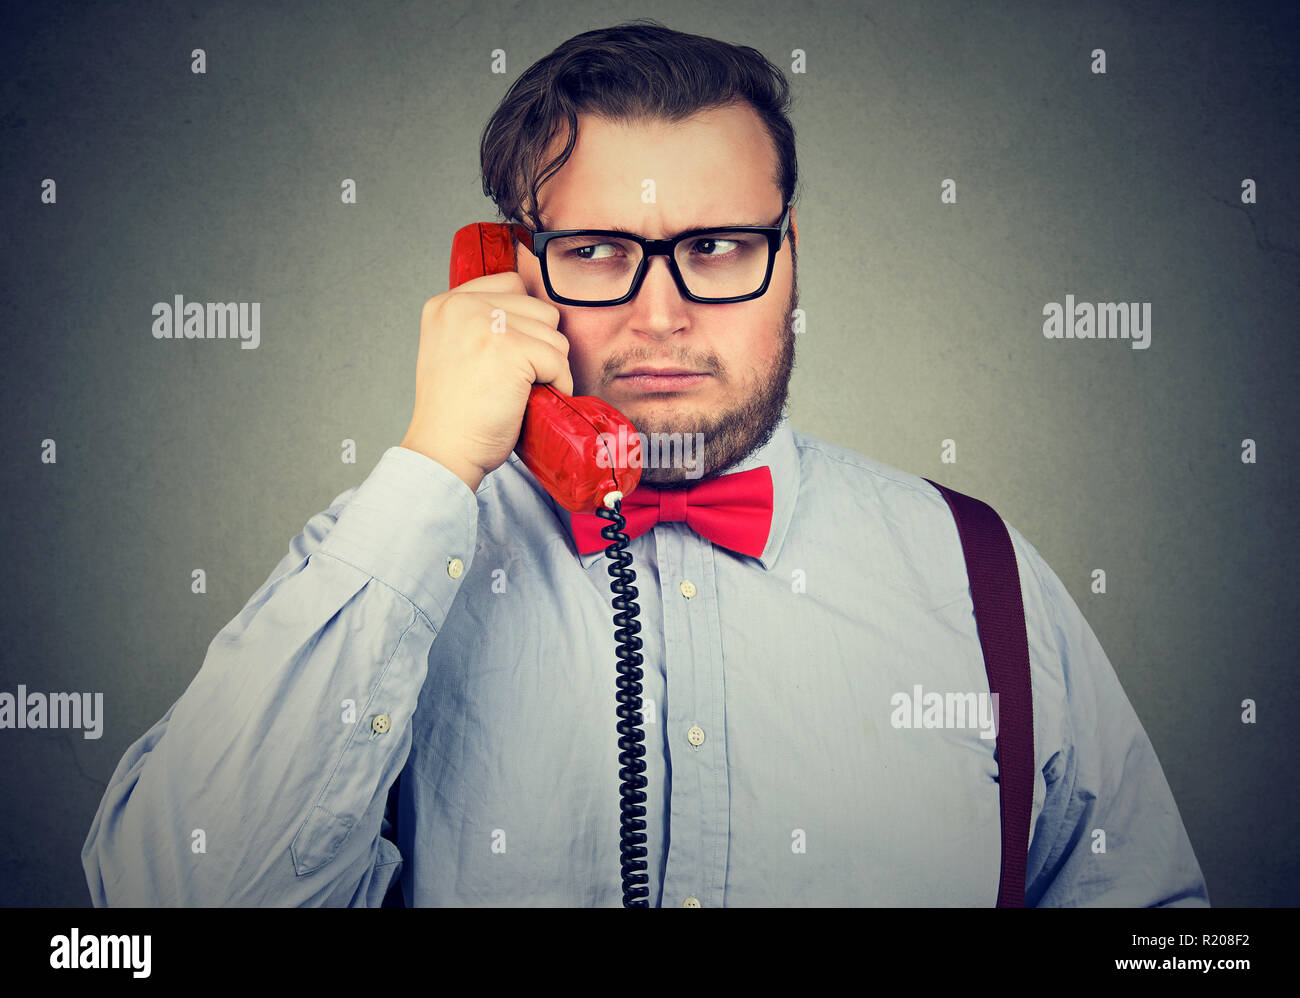 Young frowning man having problem while speaking on red telephone feeling confused and suspicious on gray background - Stock Image